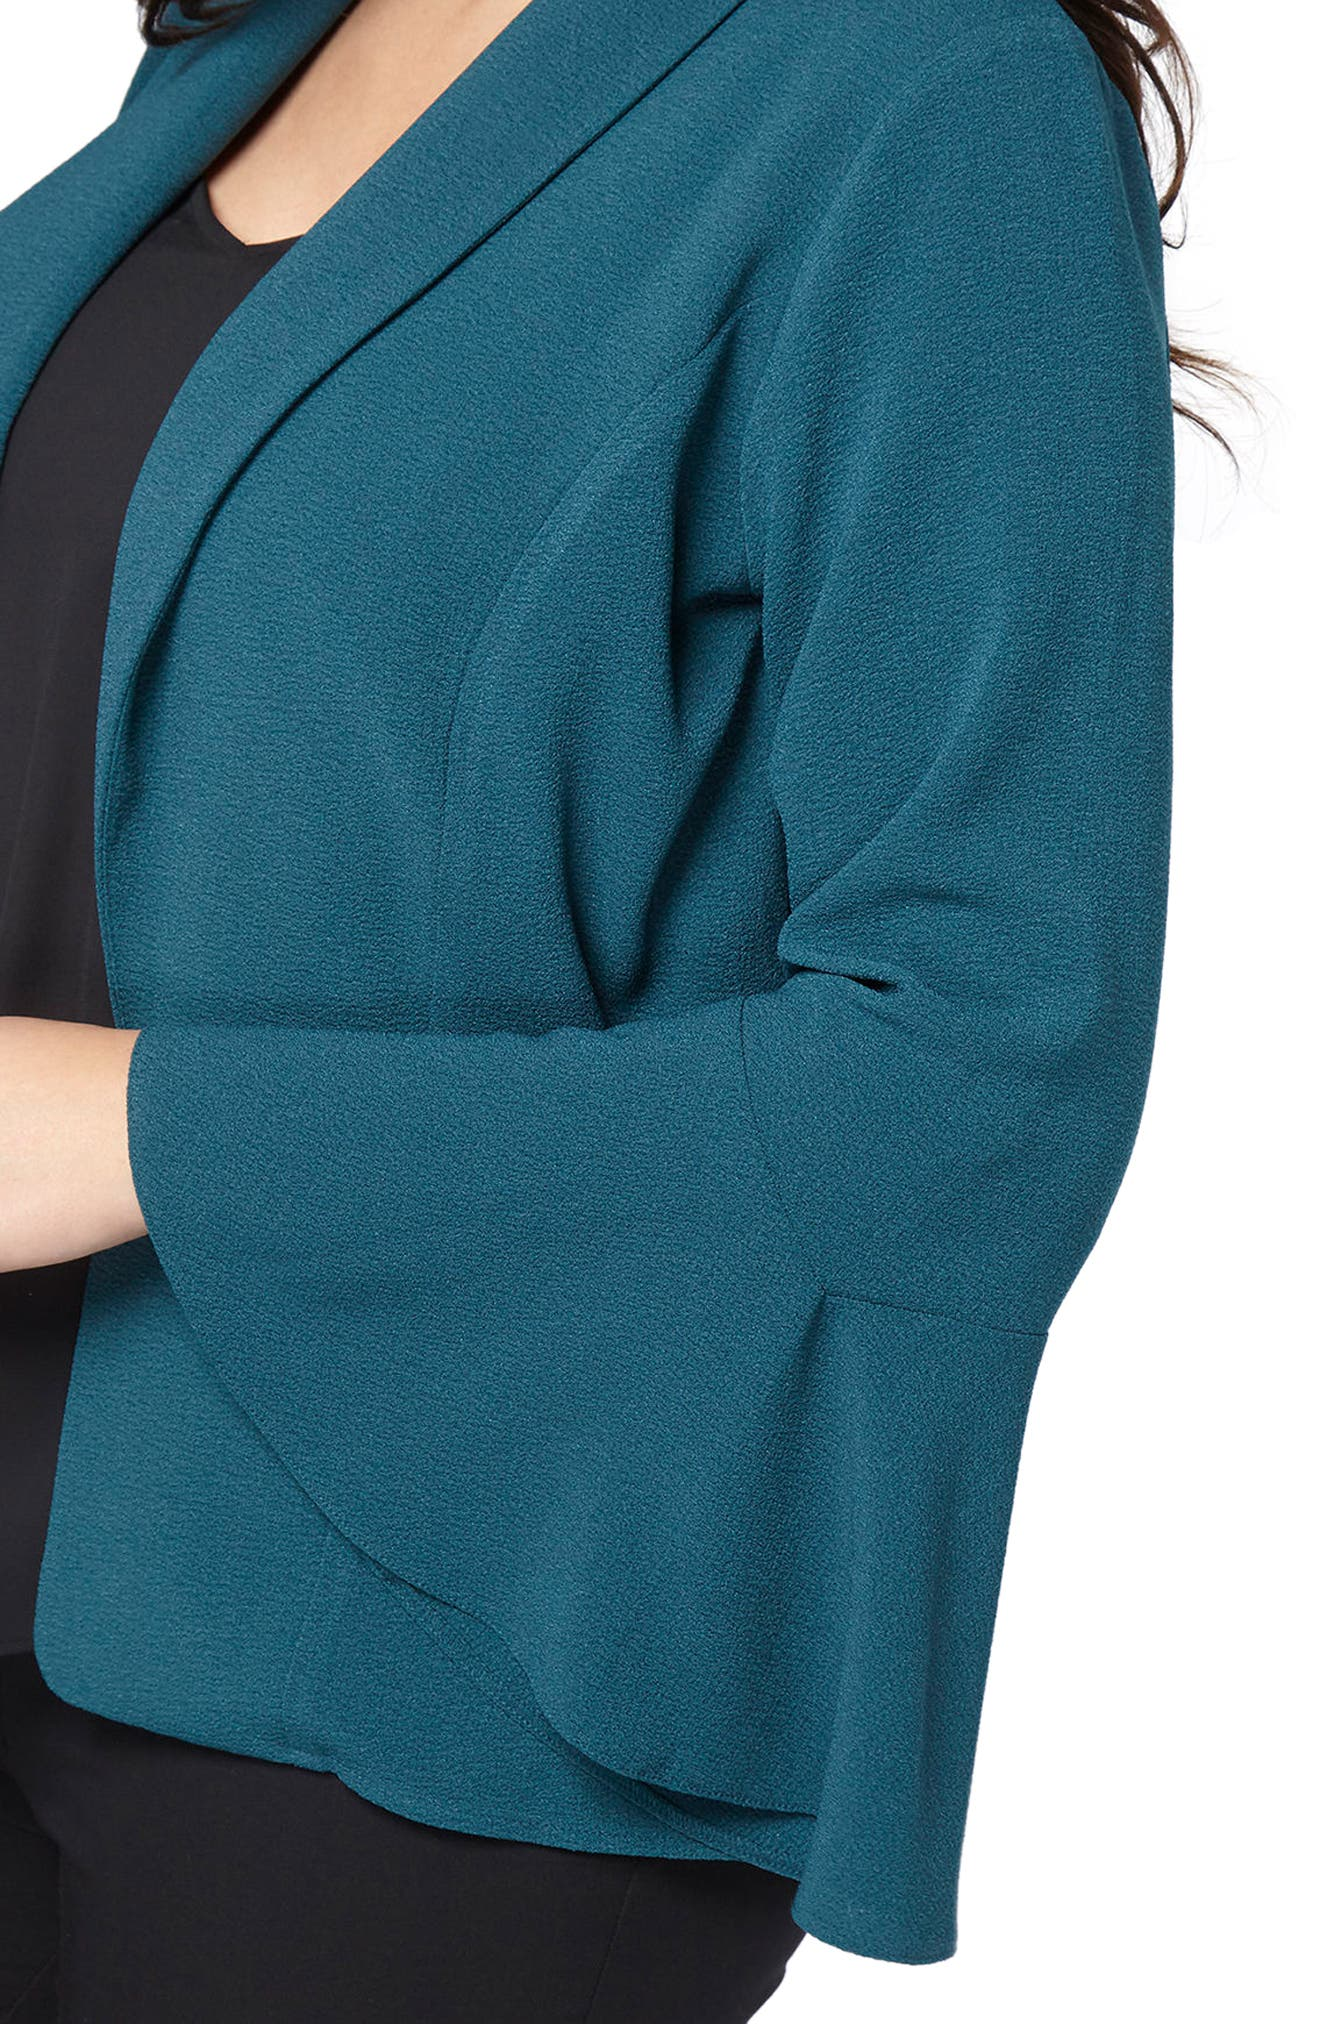 Bell Sleeve Crepe Jacket,                             Alternate thumbnail 4, color,                             Teal